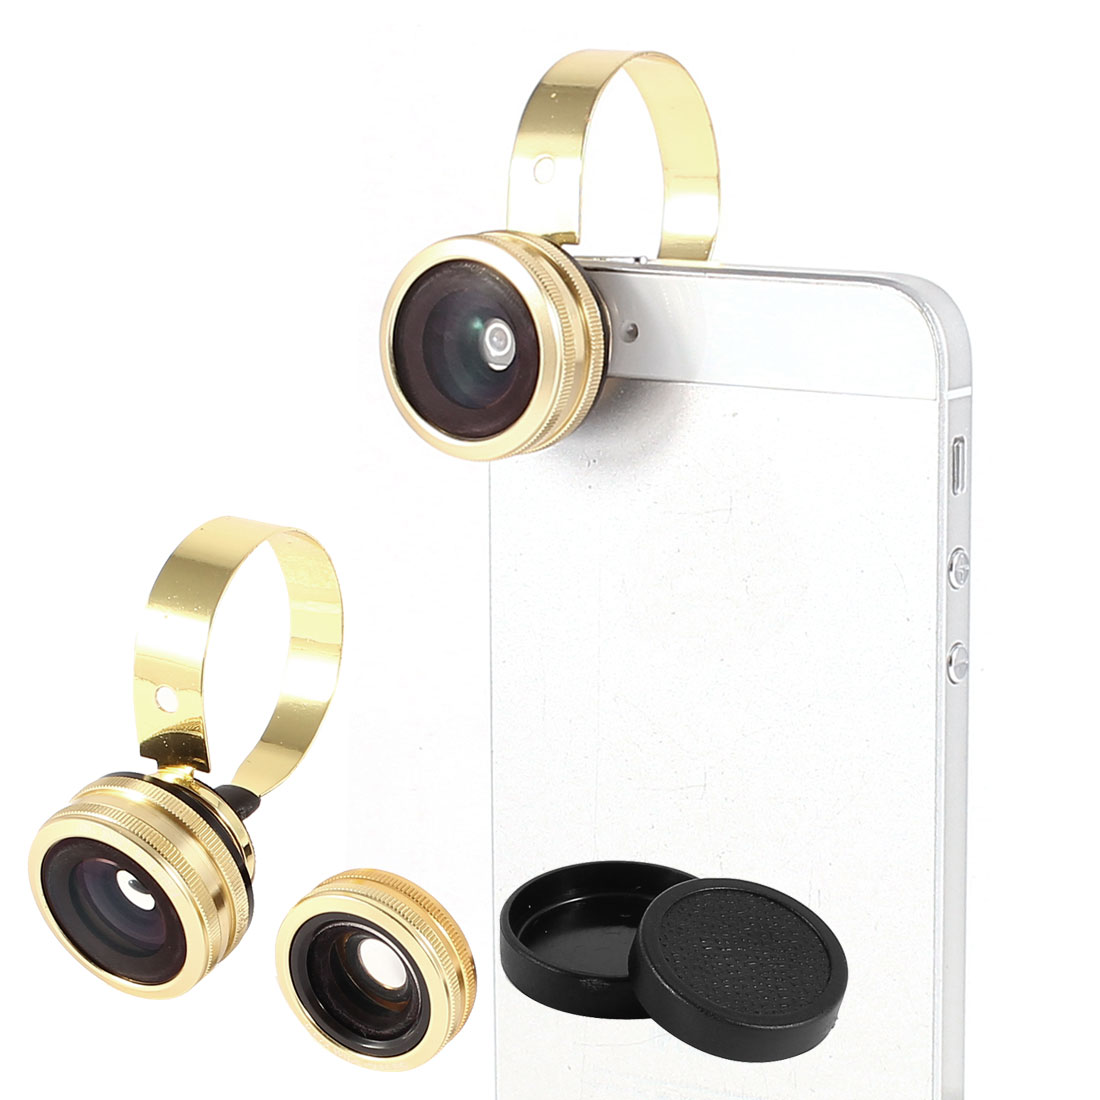 3 in 1 Phone 180 Degree Fish Eye Lens + Wide Angle + Micro Lens Camera Gold Tone